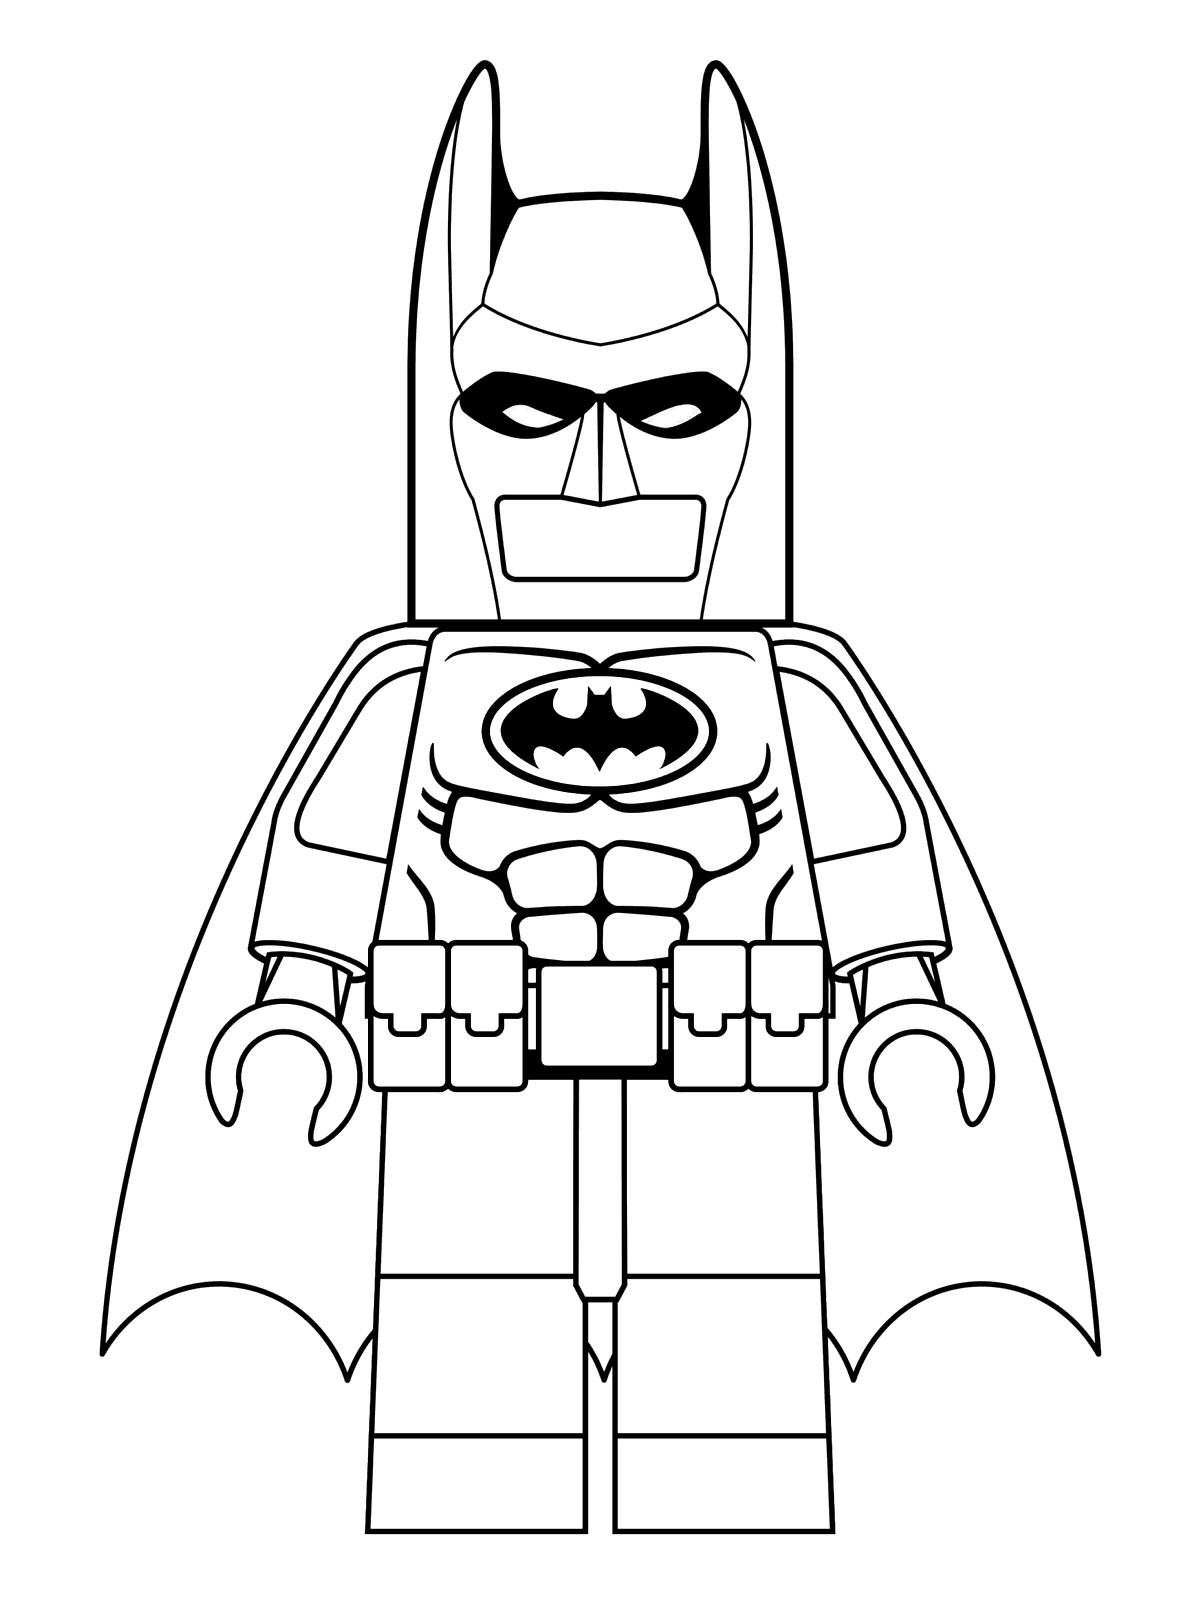 Kidsnfuncom  16 coloring pages of Lego Batman Movie